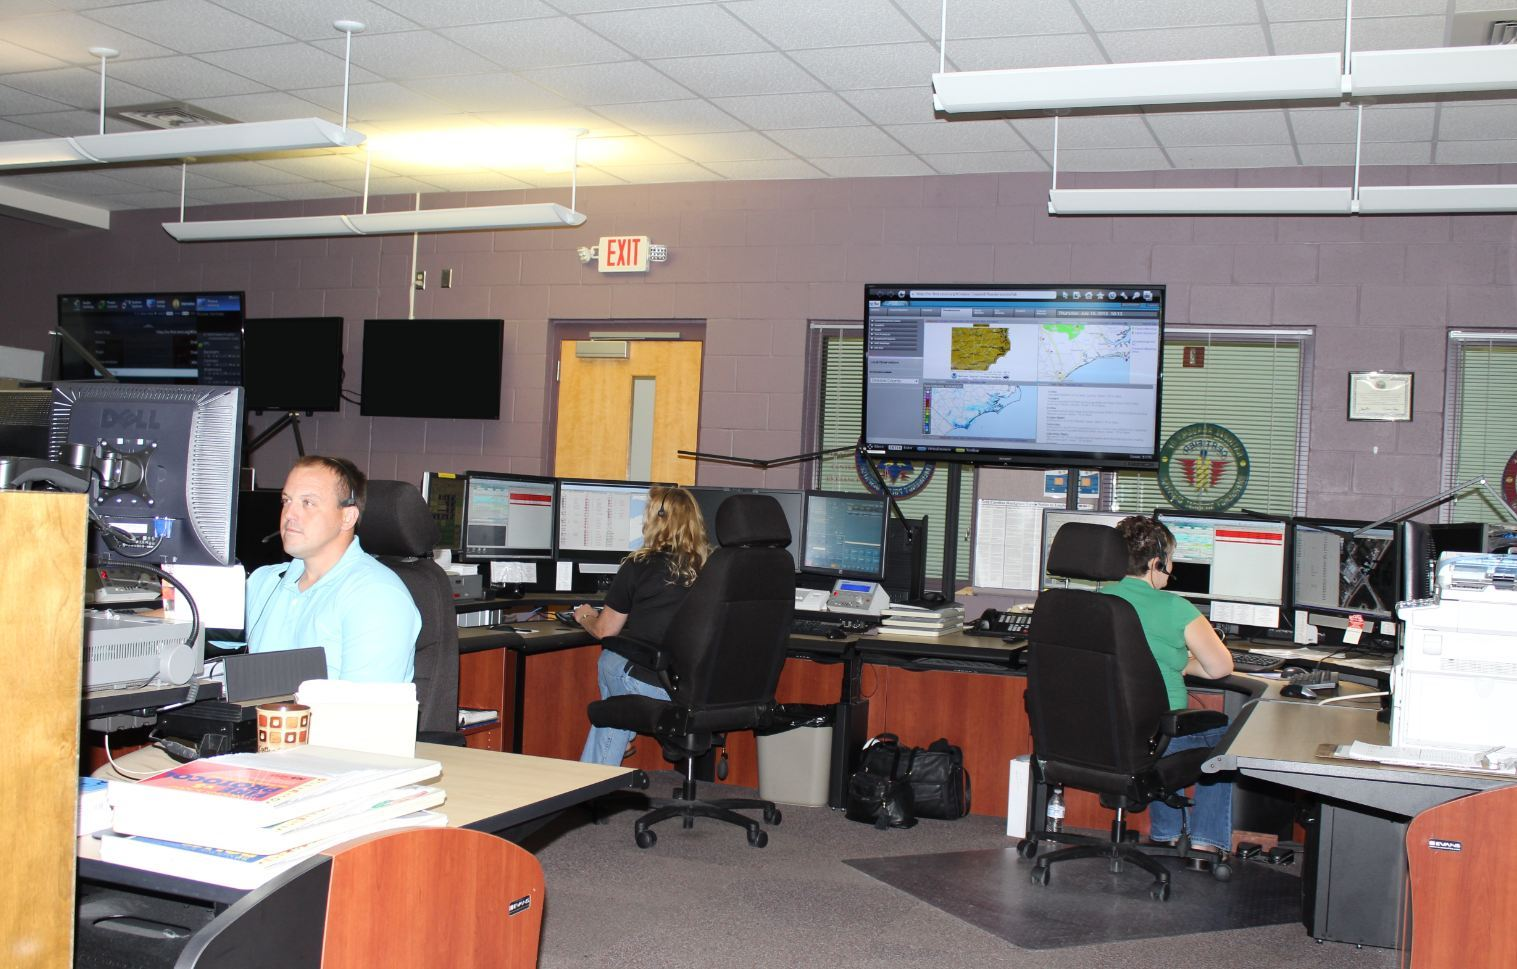 Telecommunicators at their desks prepared to take emergency calls.